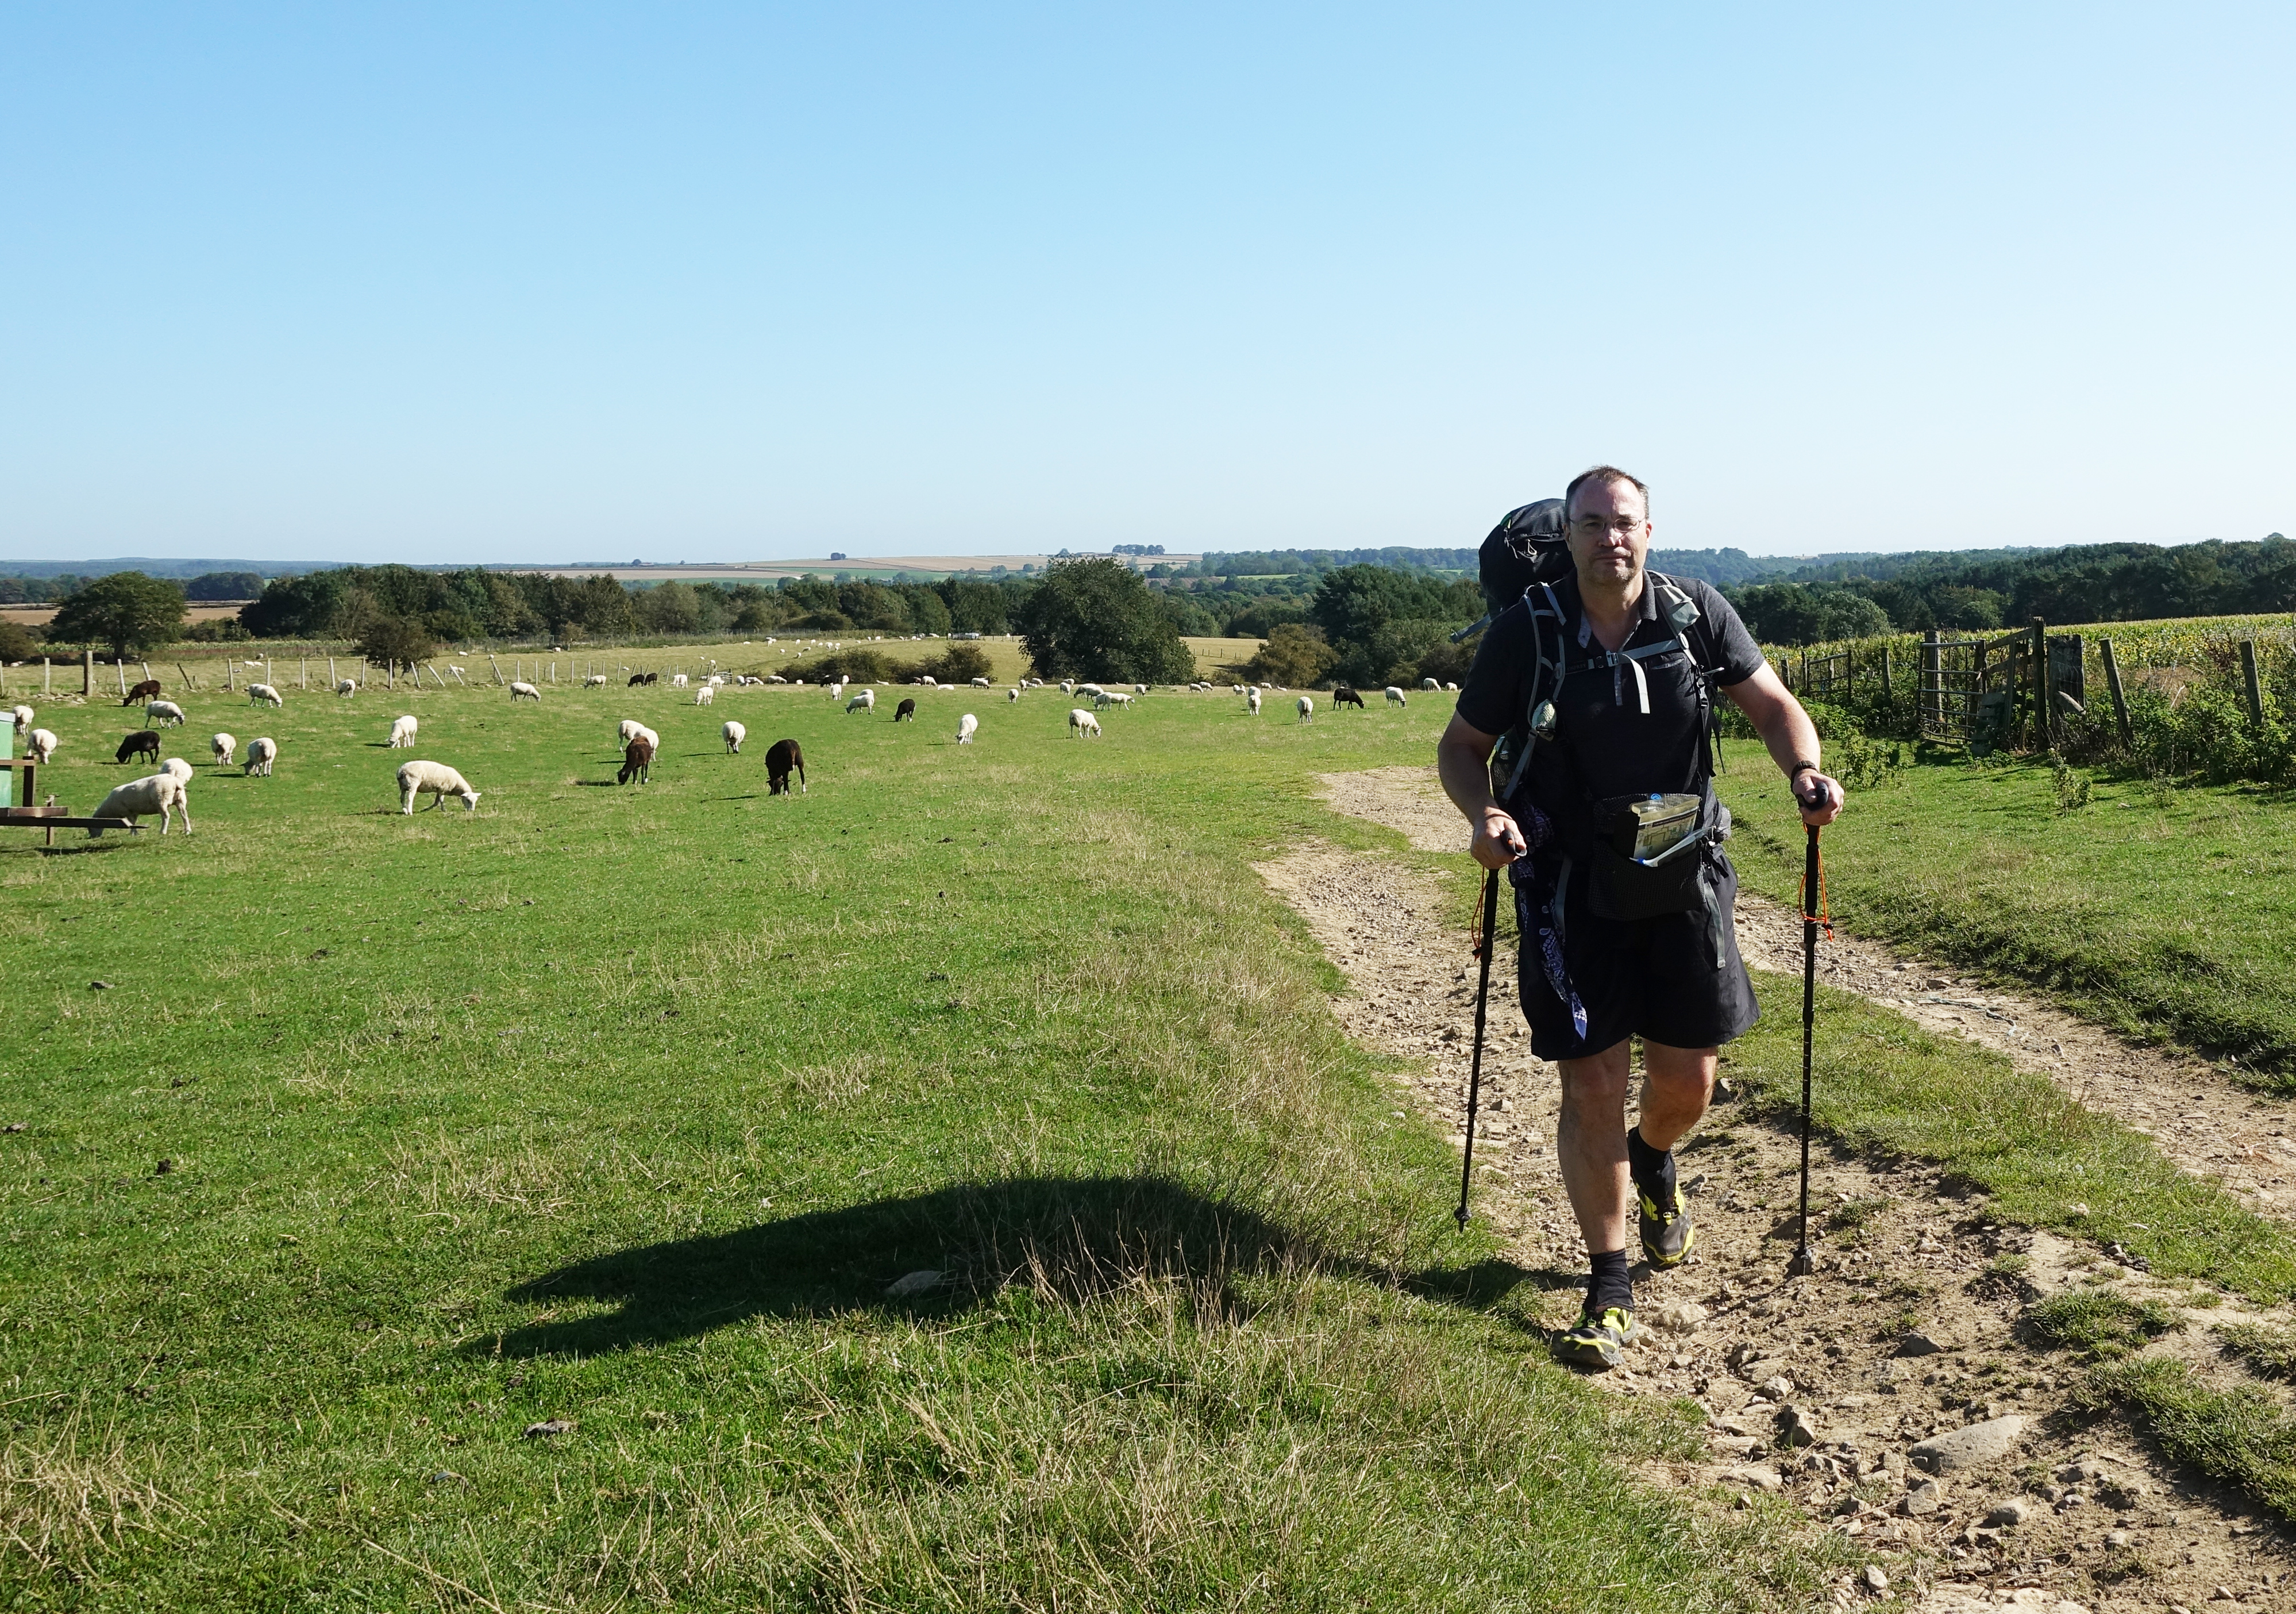 Leaving Helmsley it is easy walking on gentle paths through rural landscape with the moors still ahead